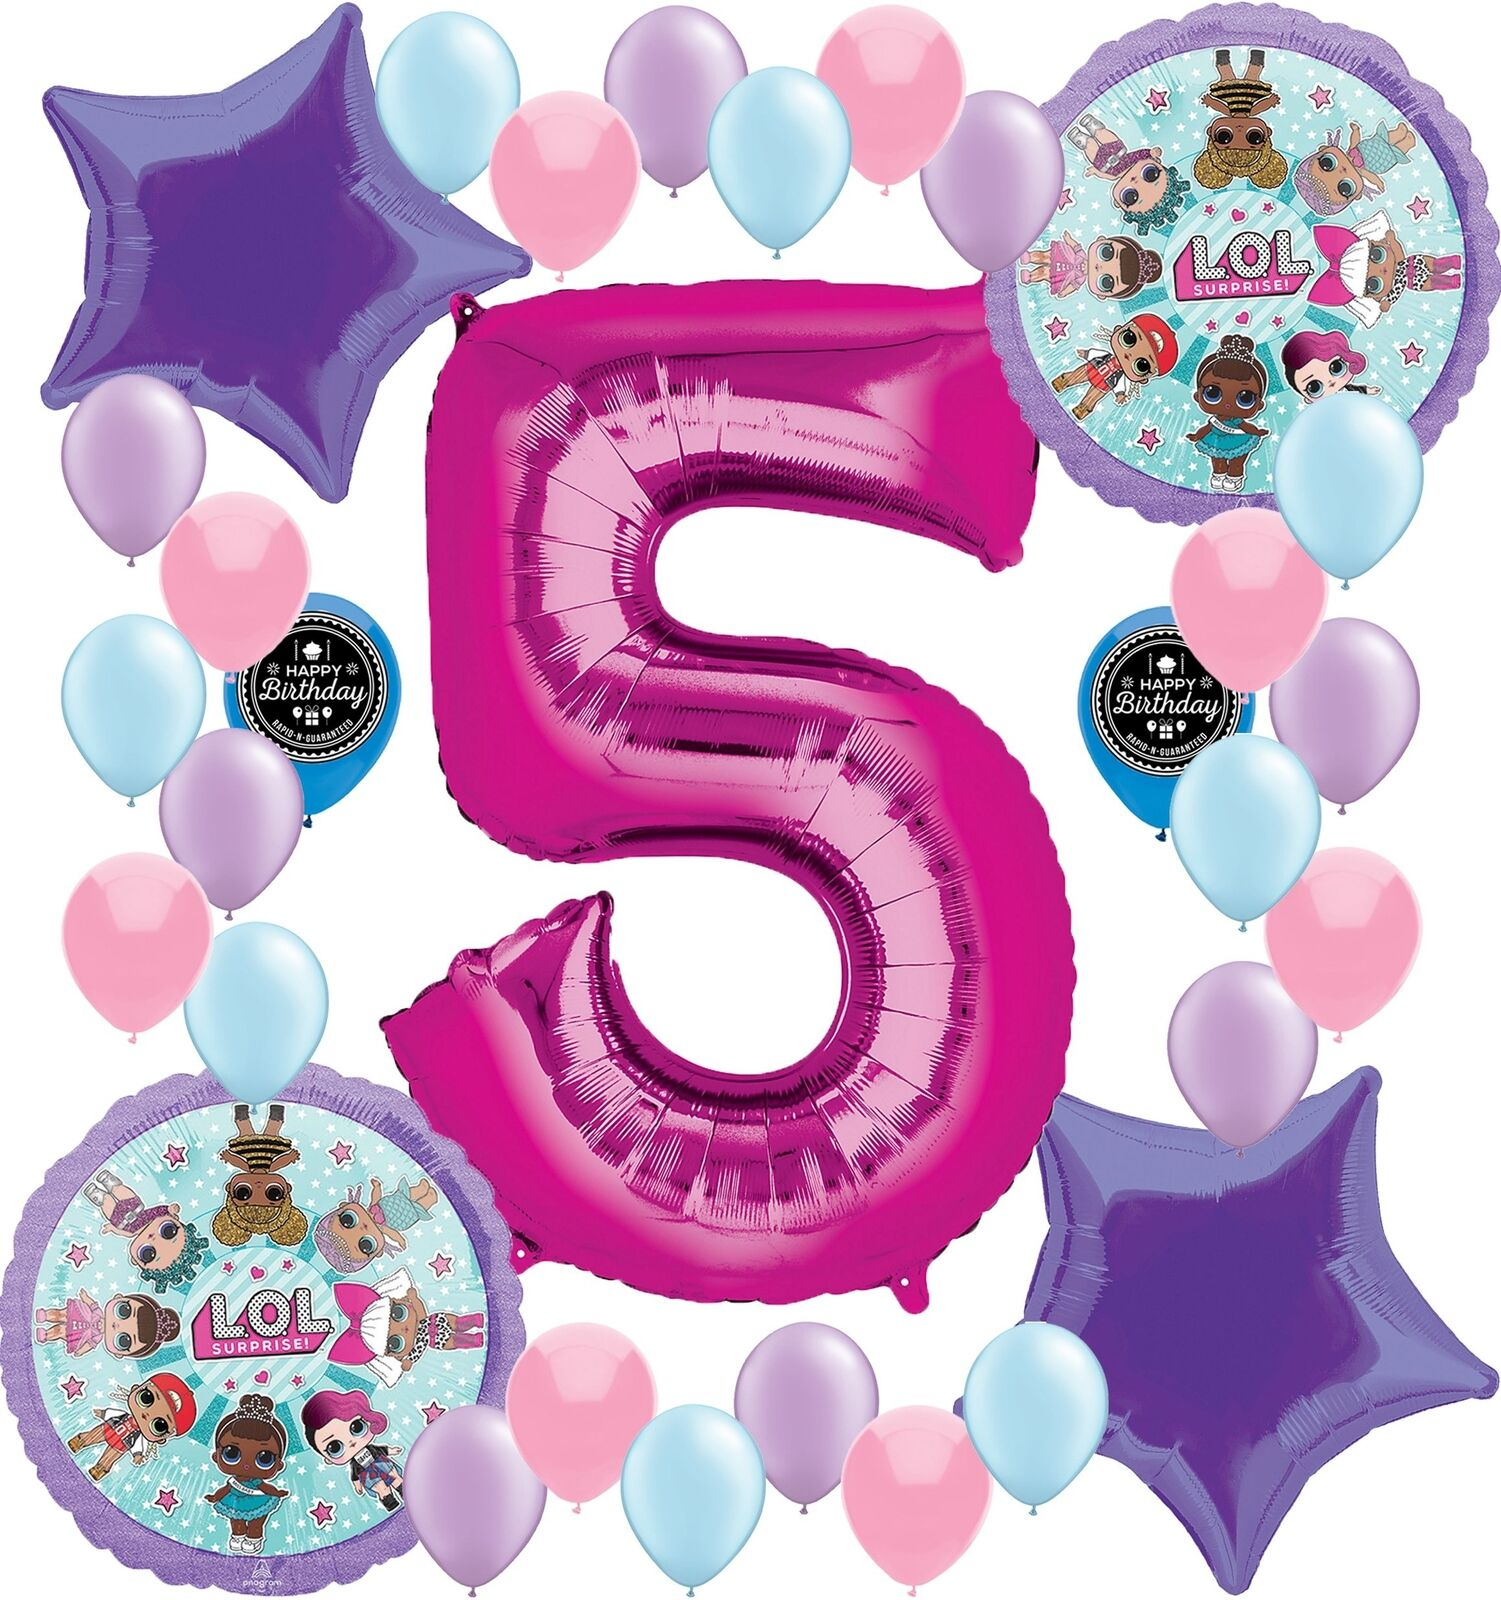 Ella Celebration Non Floating 17 Number Balloons For 17th Birthday Party 13 For Sale Online Ebay